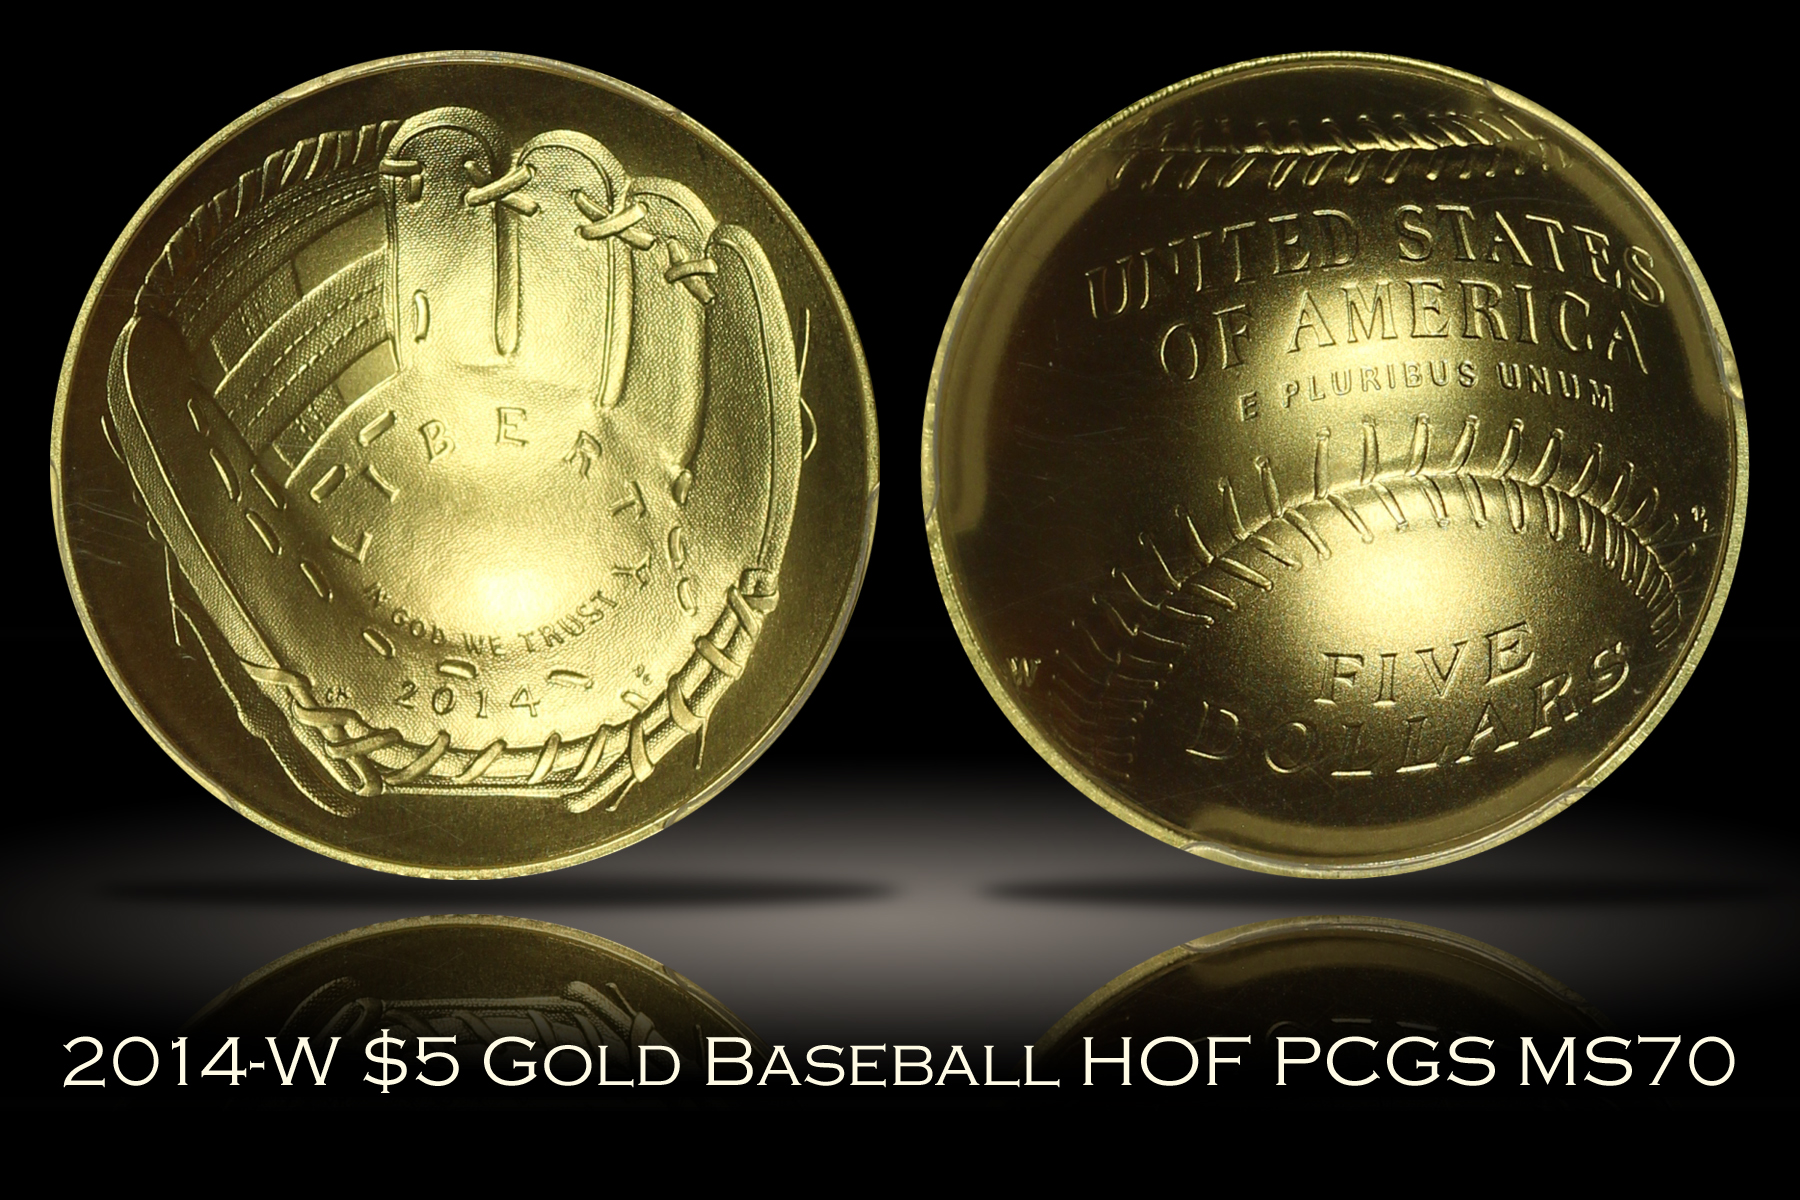 2014-W $5 Gold Baseball Hall of Fame PCGS MS70